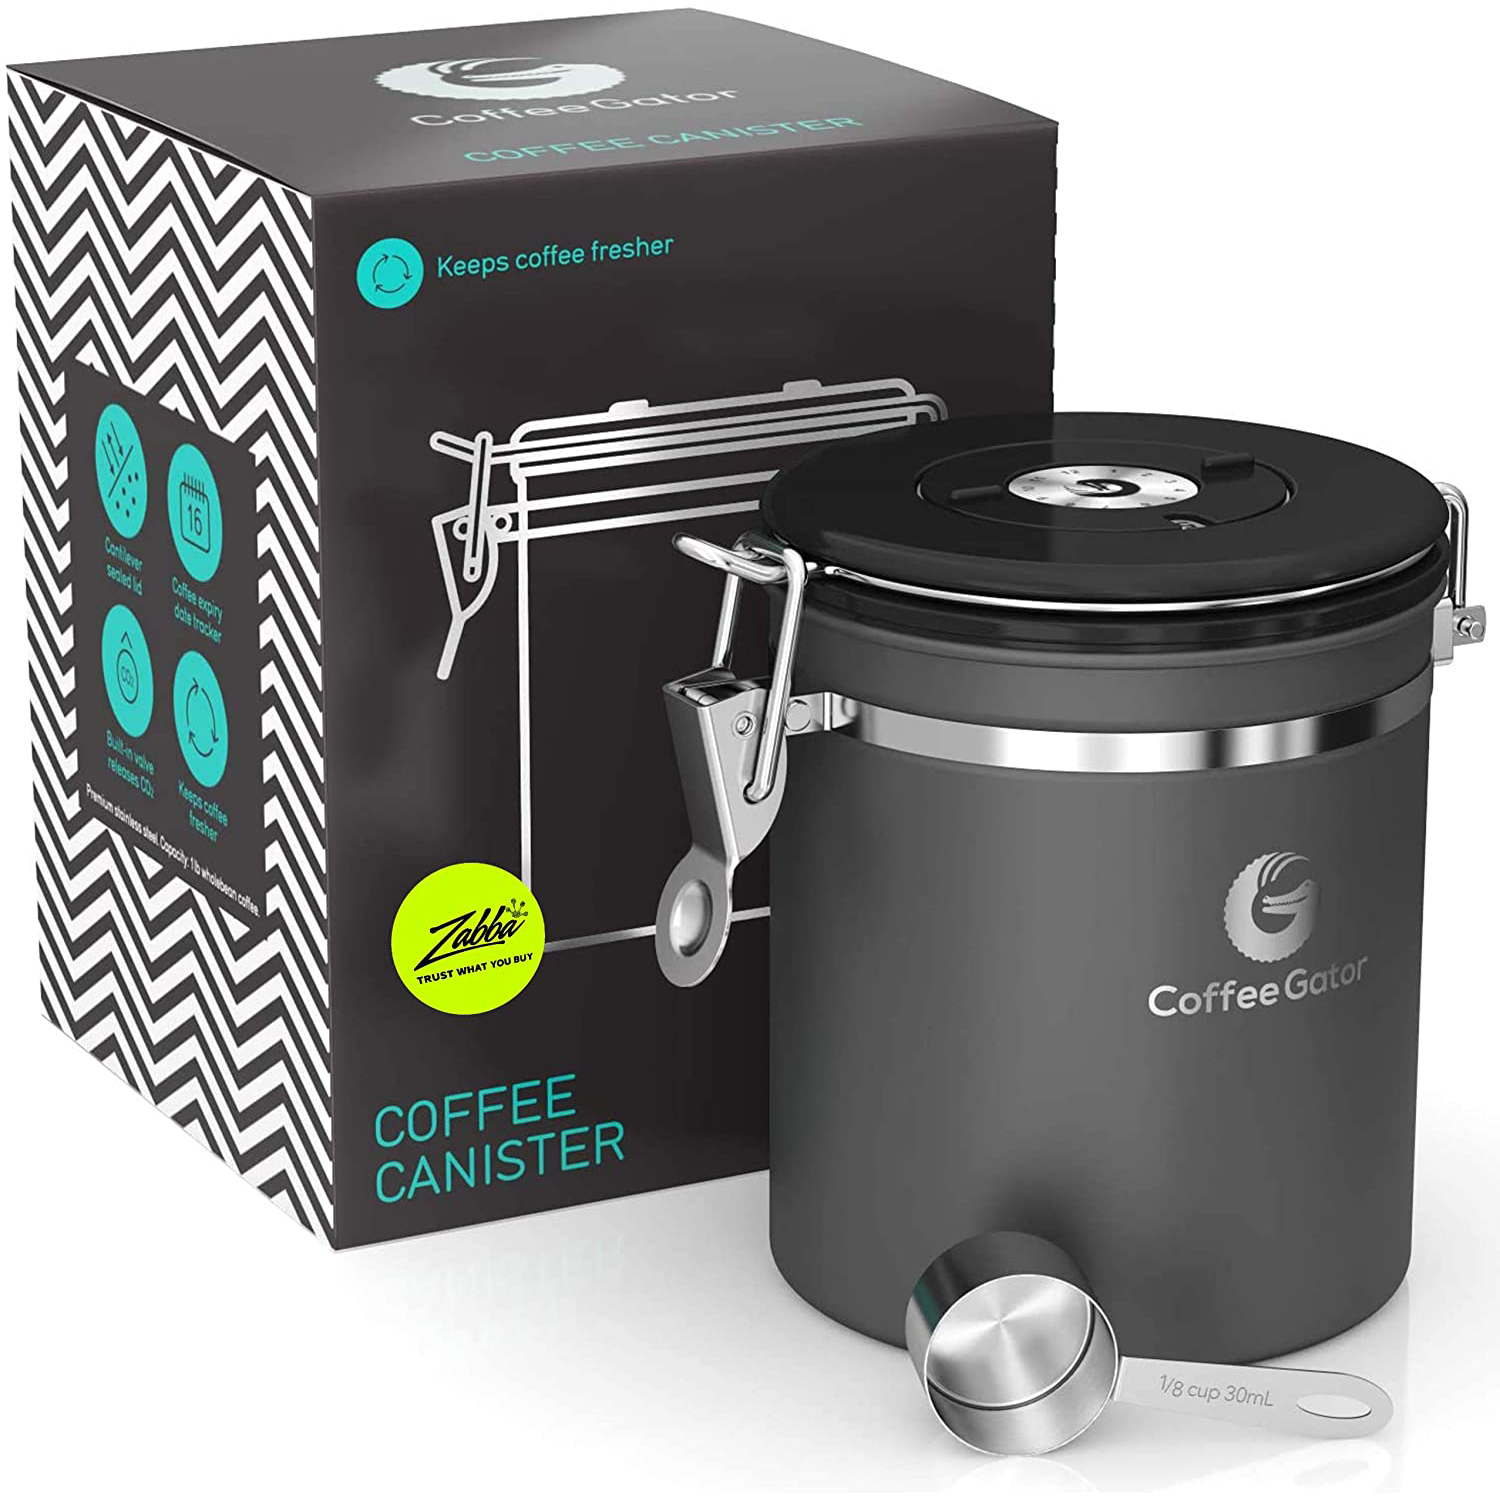 Coffee Gator Stainless Steel Caniser